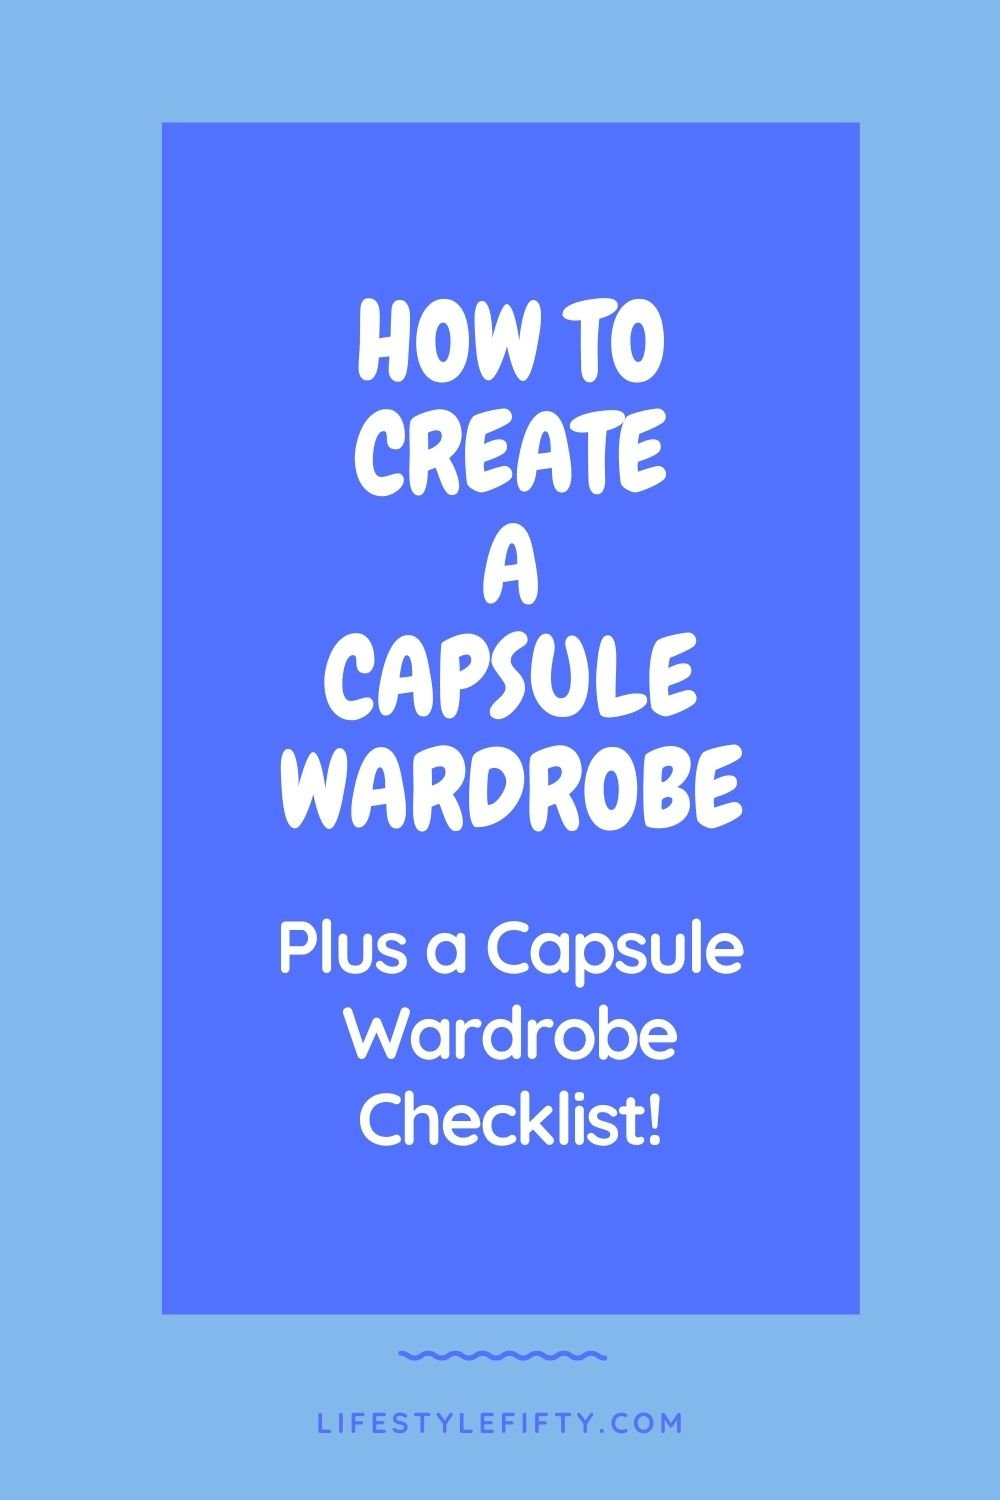 How to Create a Capsule Wardrobe, text overlay, blue background